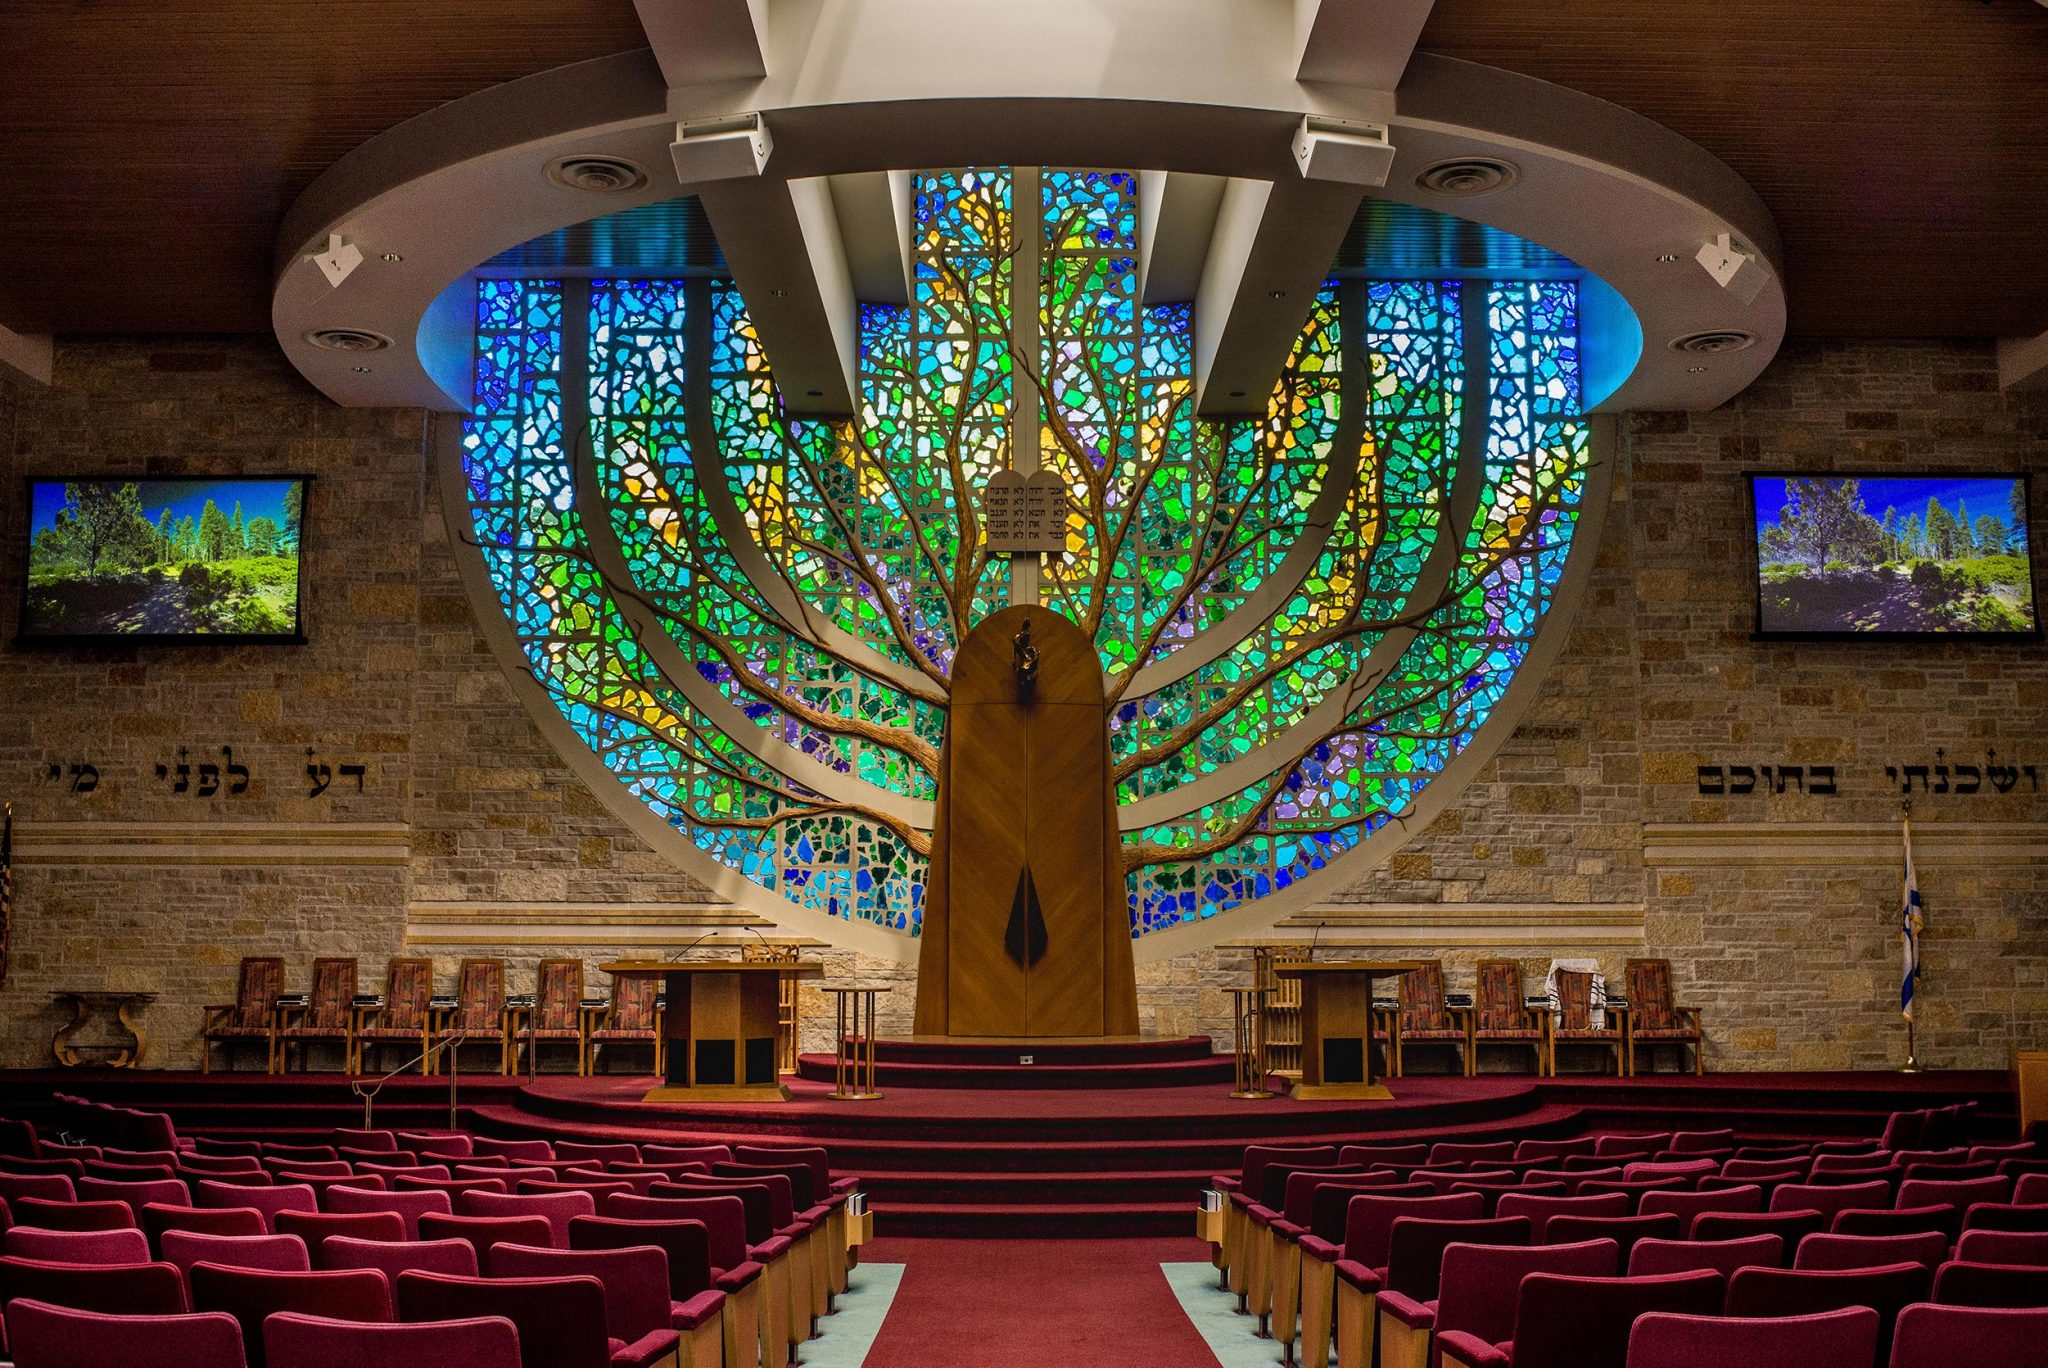 Congregation Shalom Adopts Zero-G Screen for Architectural Temple